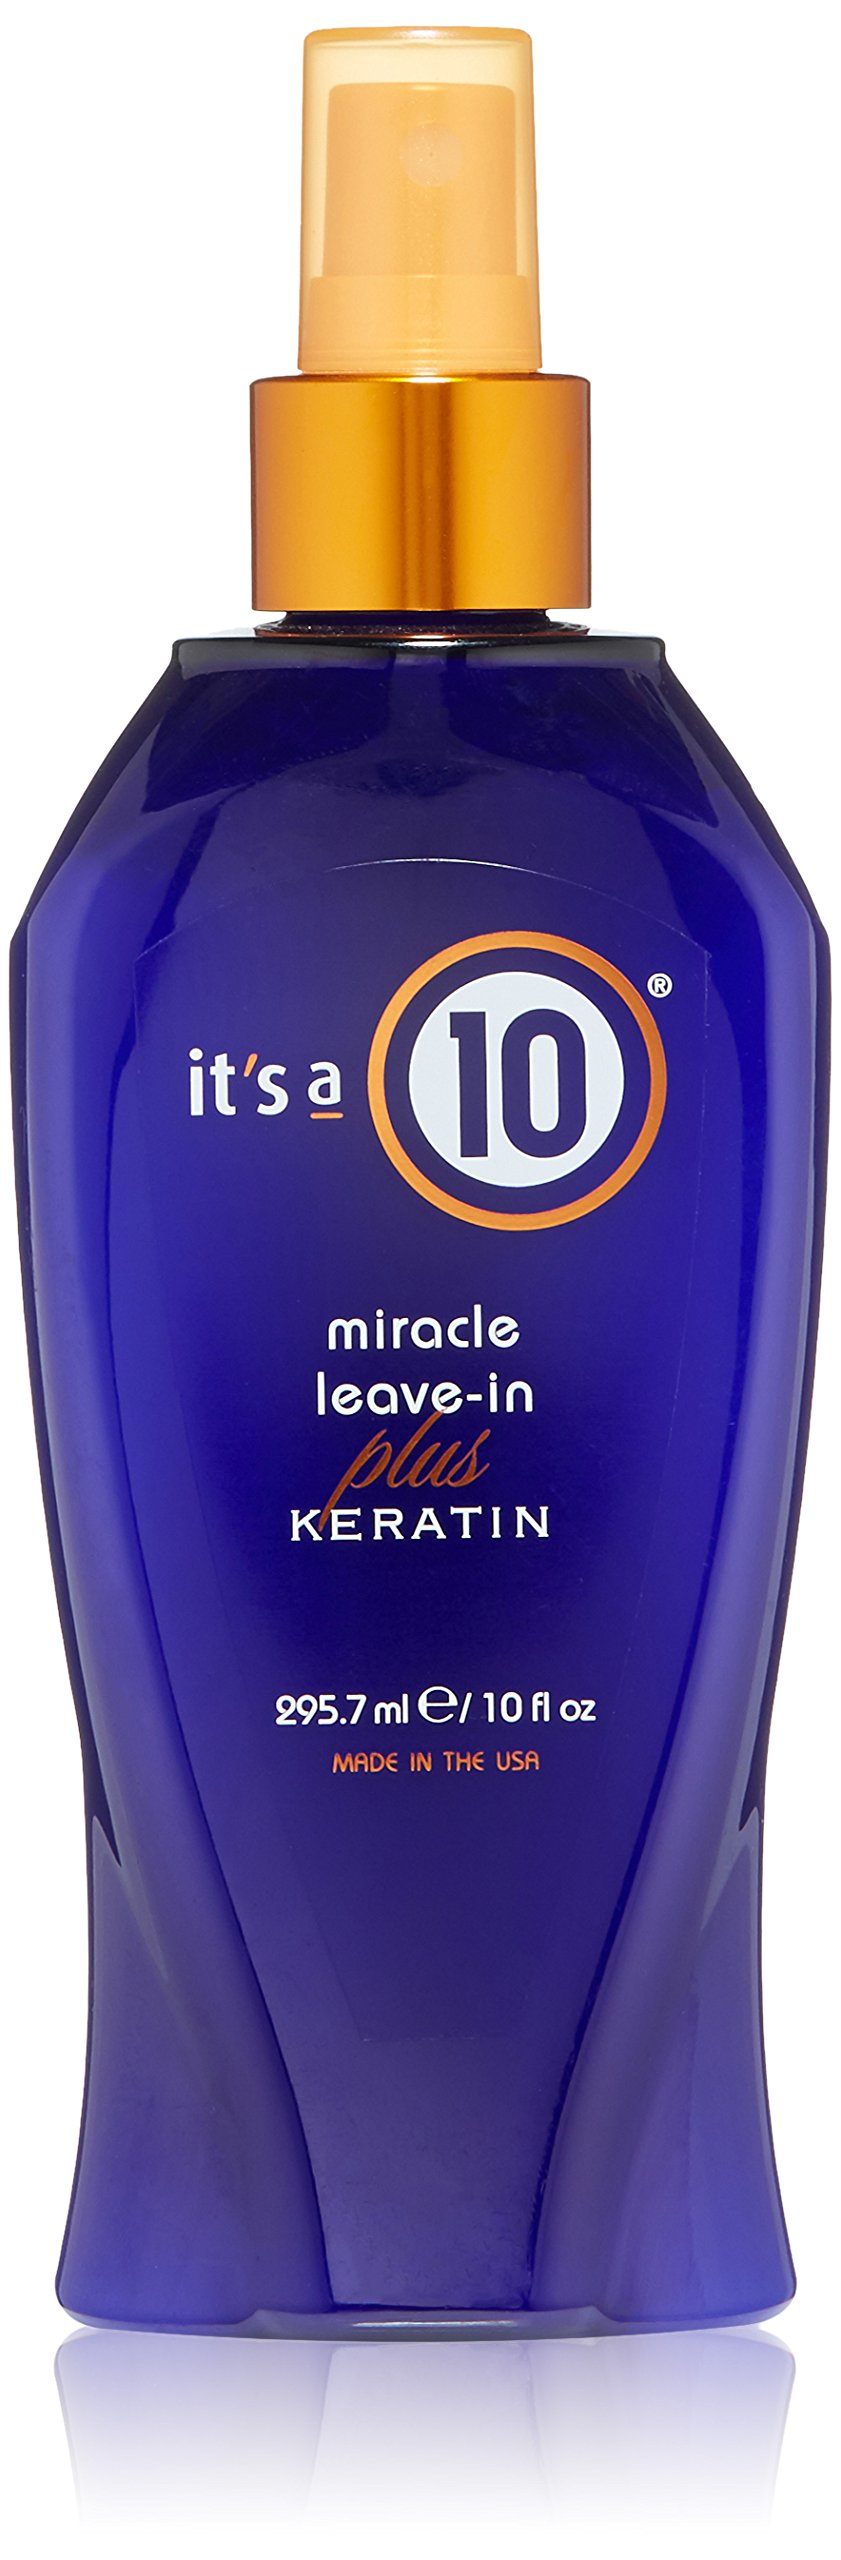 It's a 10 Haircare Miracle Leave-In Plus Keratin, 10 fl. oz. by It's a 10 Haircare